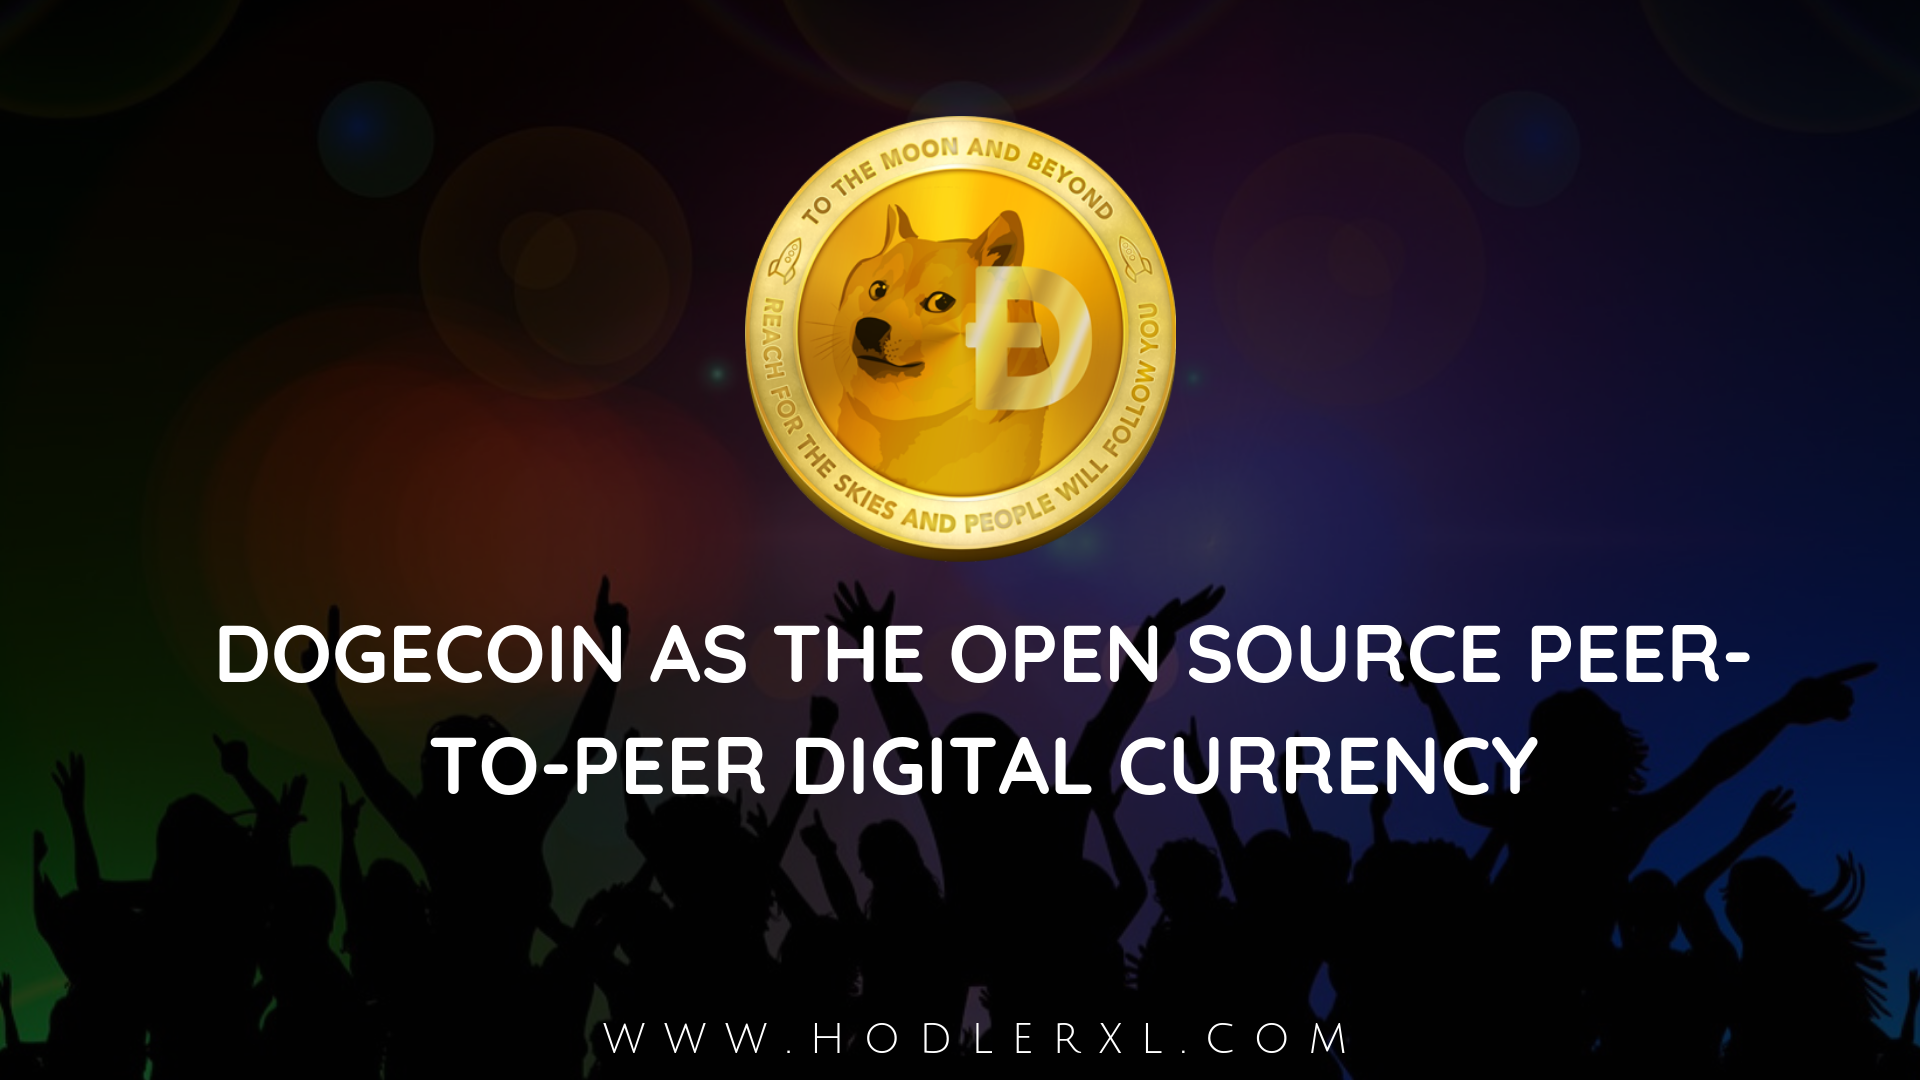 Dogecoin As The Open Source Peer-To-Peer Digital Currency